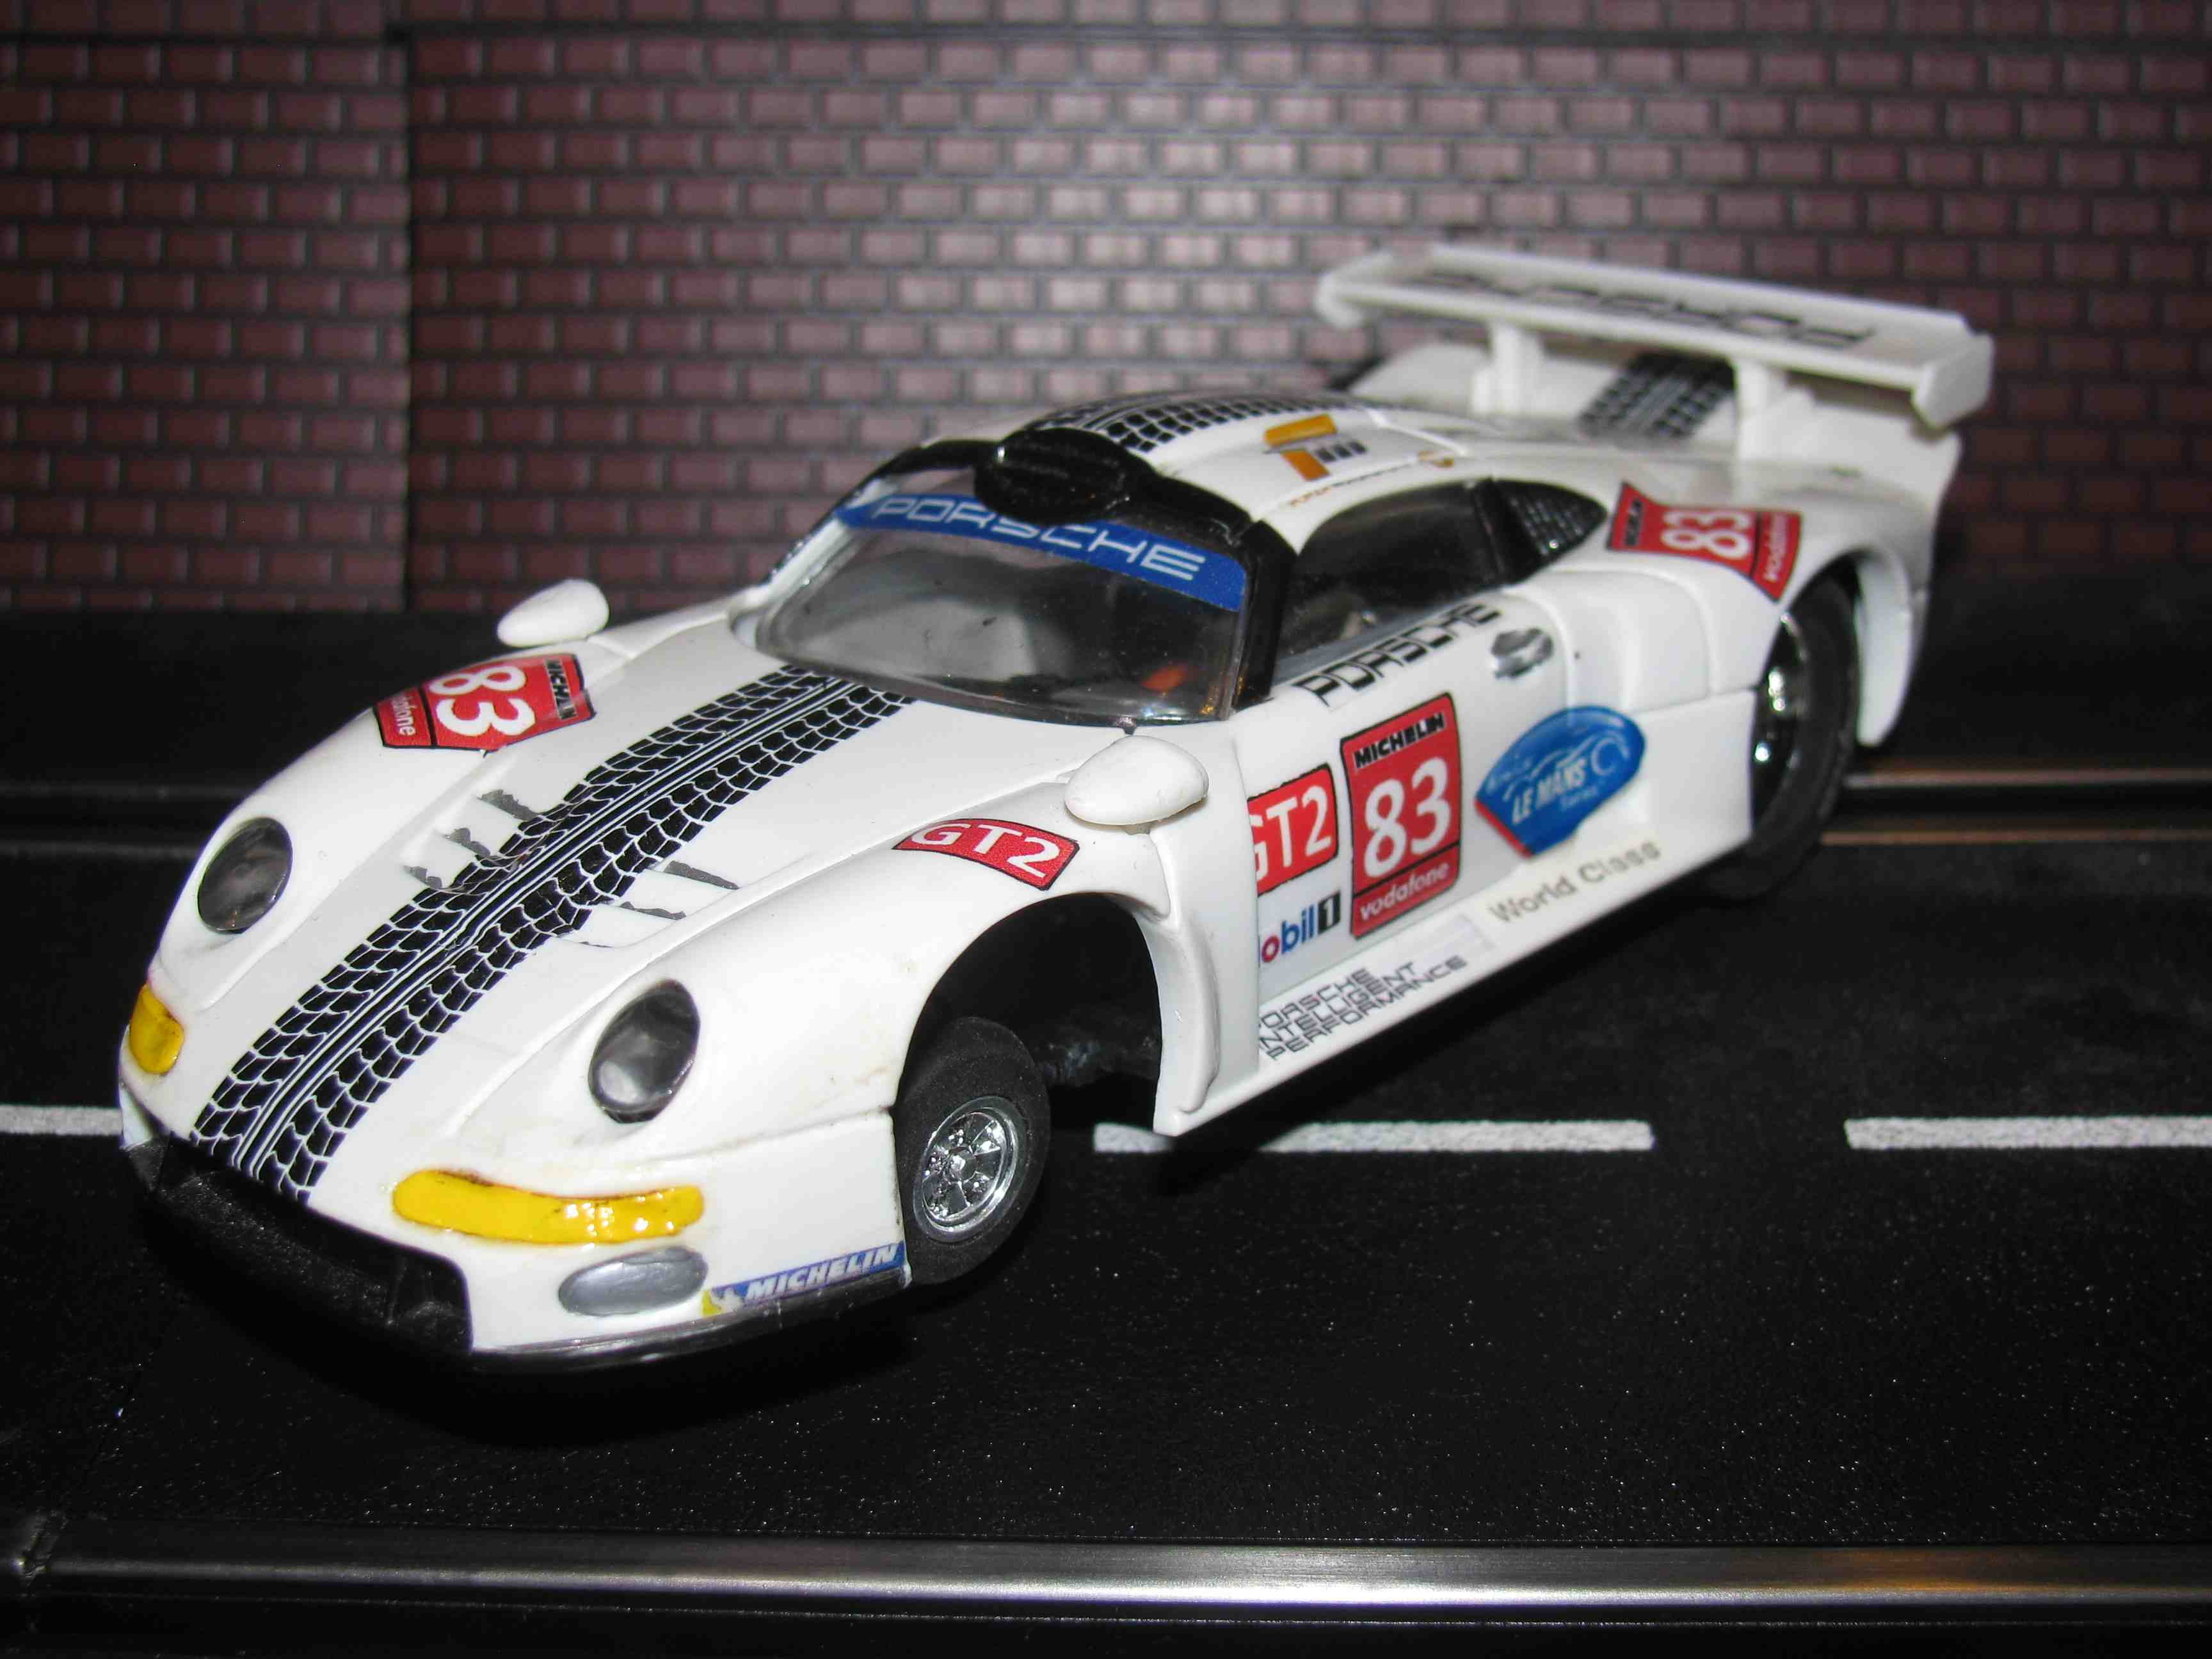 Hornby Porsche 911 GT2 Racer Slot Car 1/32 Scale - White - Car 83